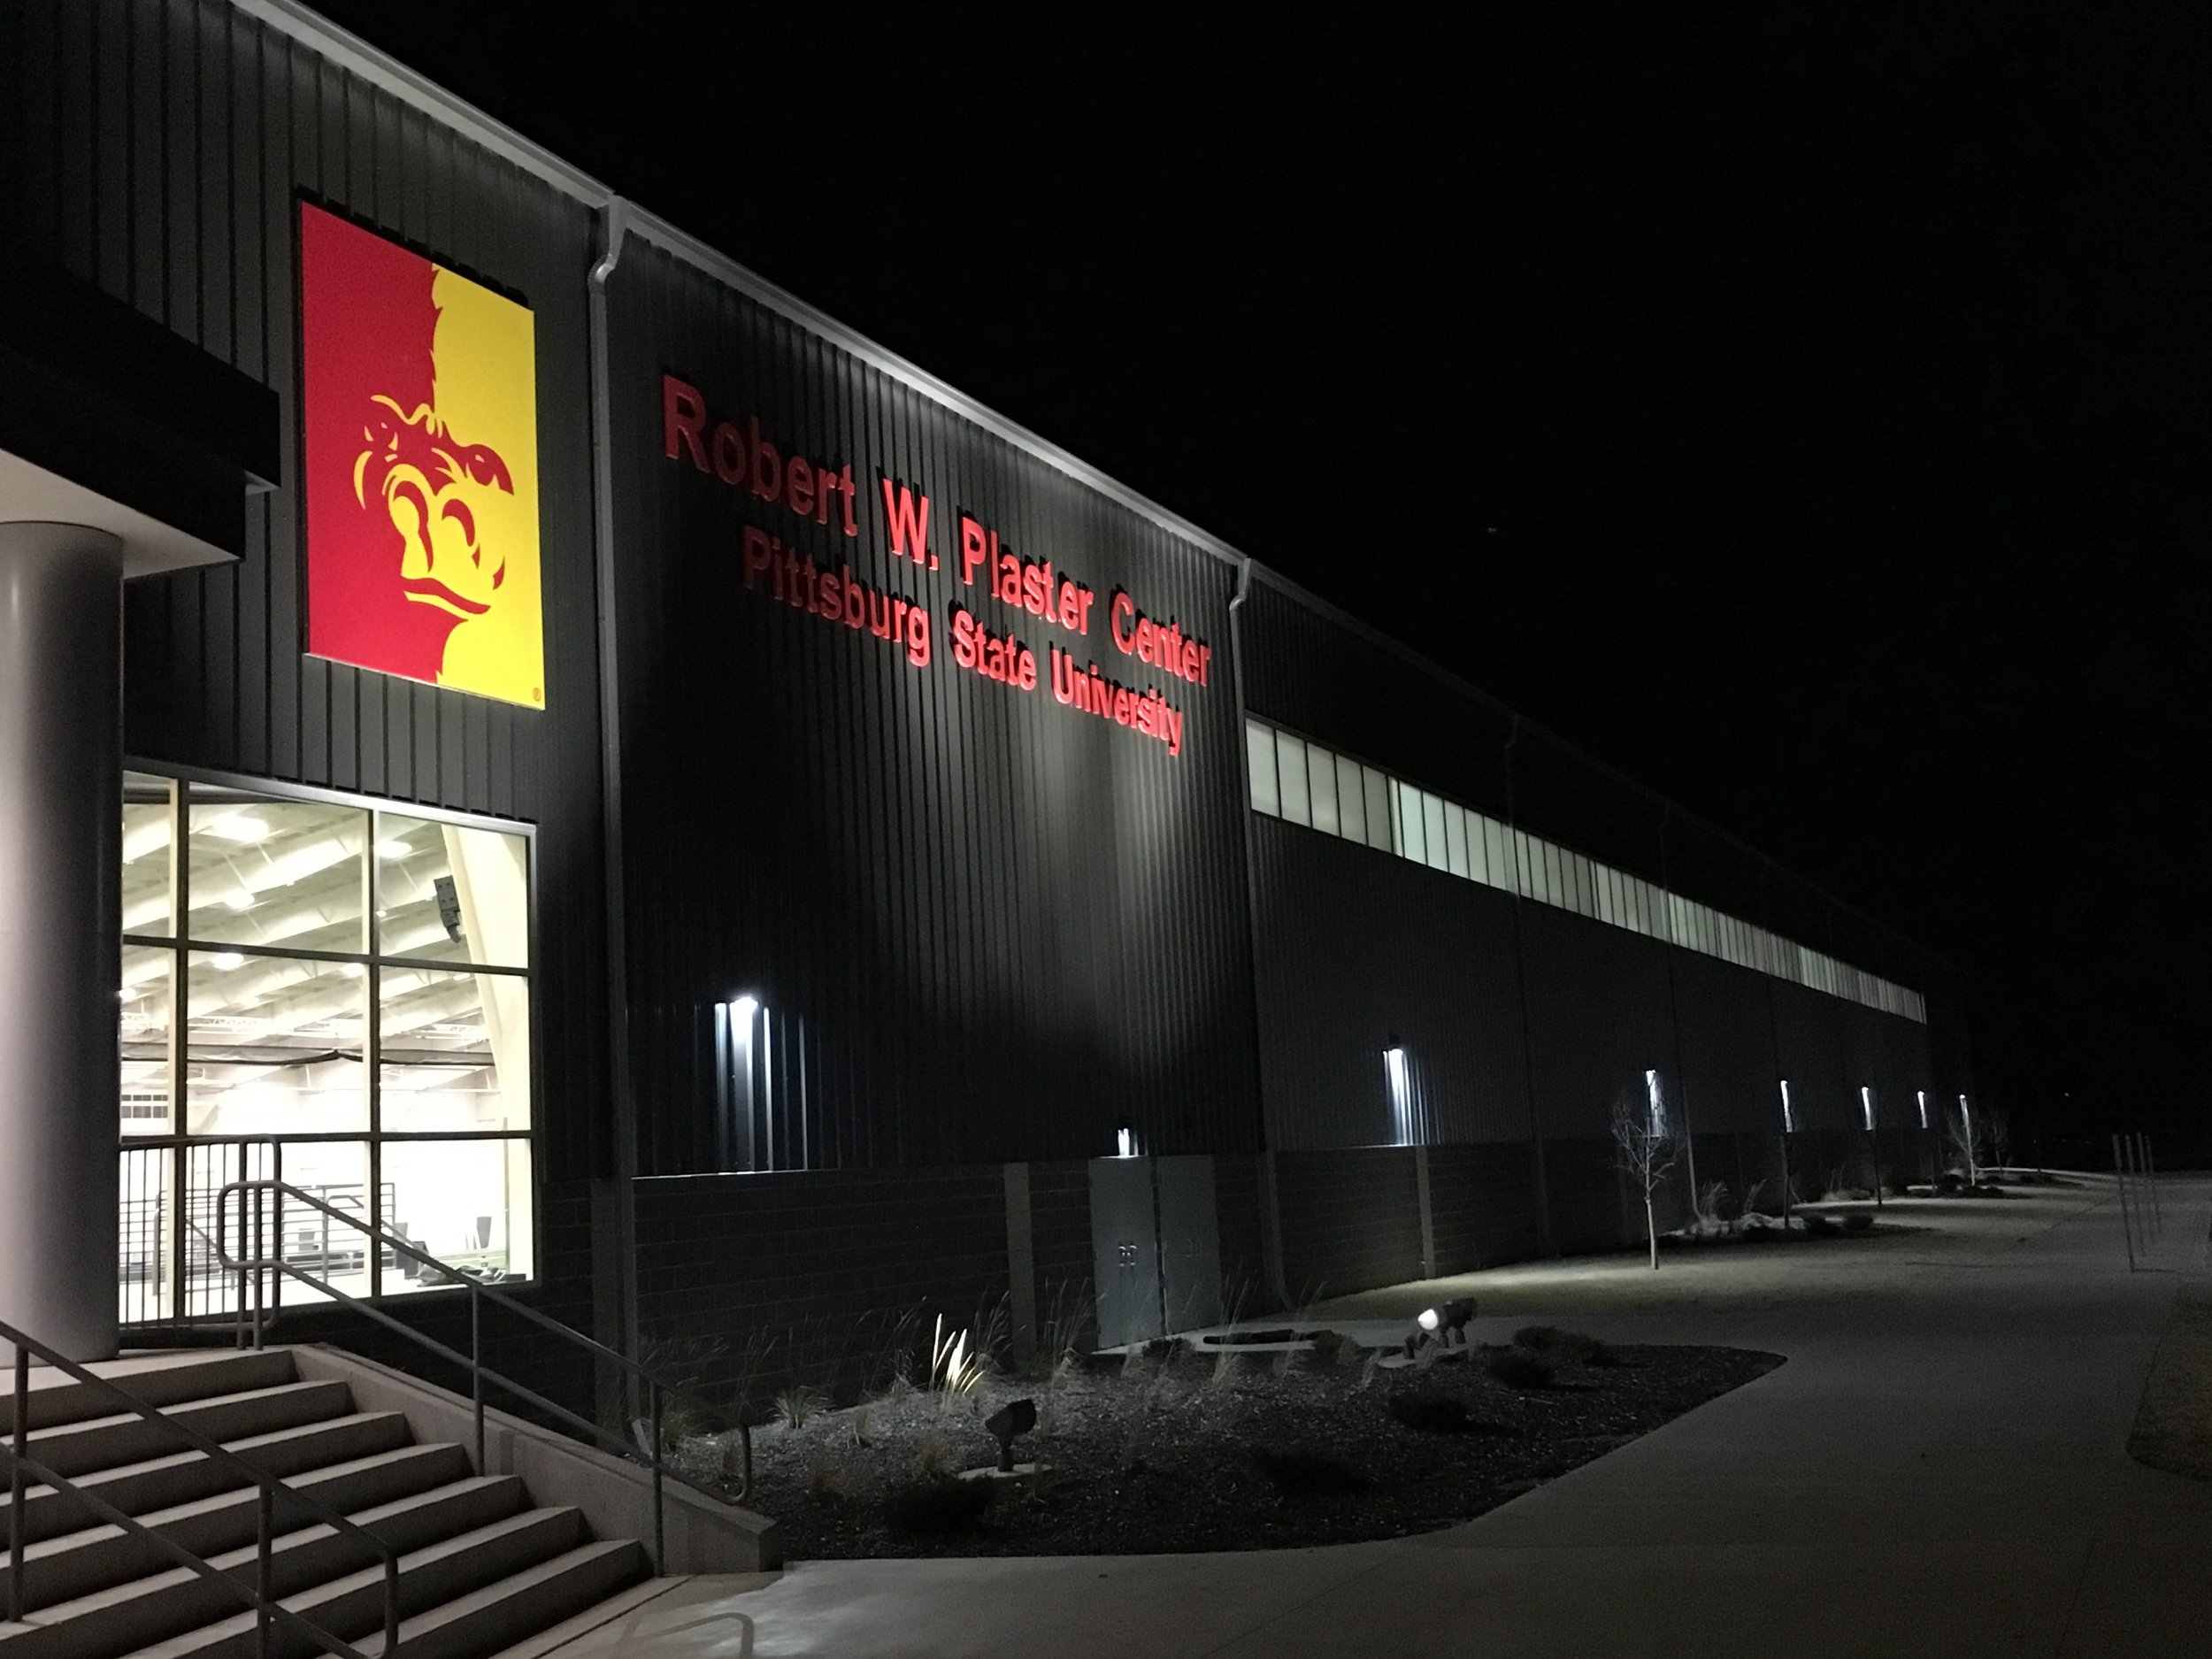 Pittsburg State University_pittsburg state event center   15.jpg